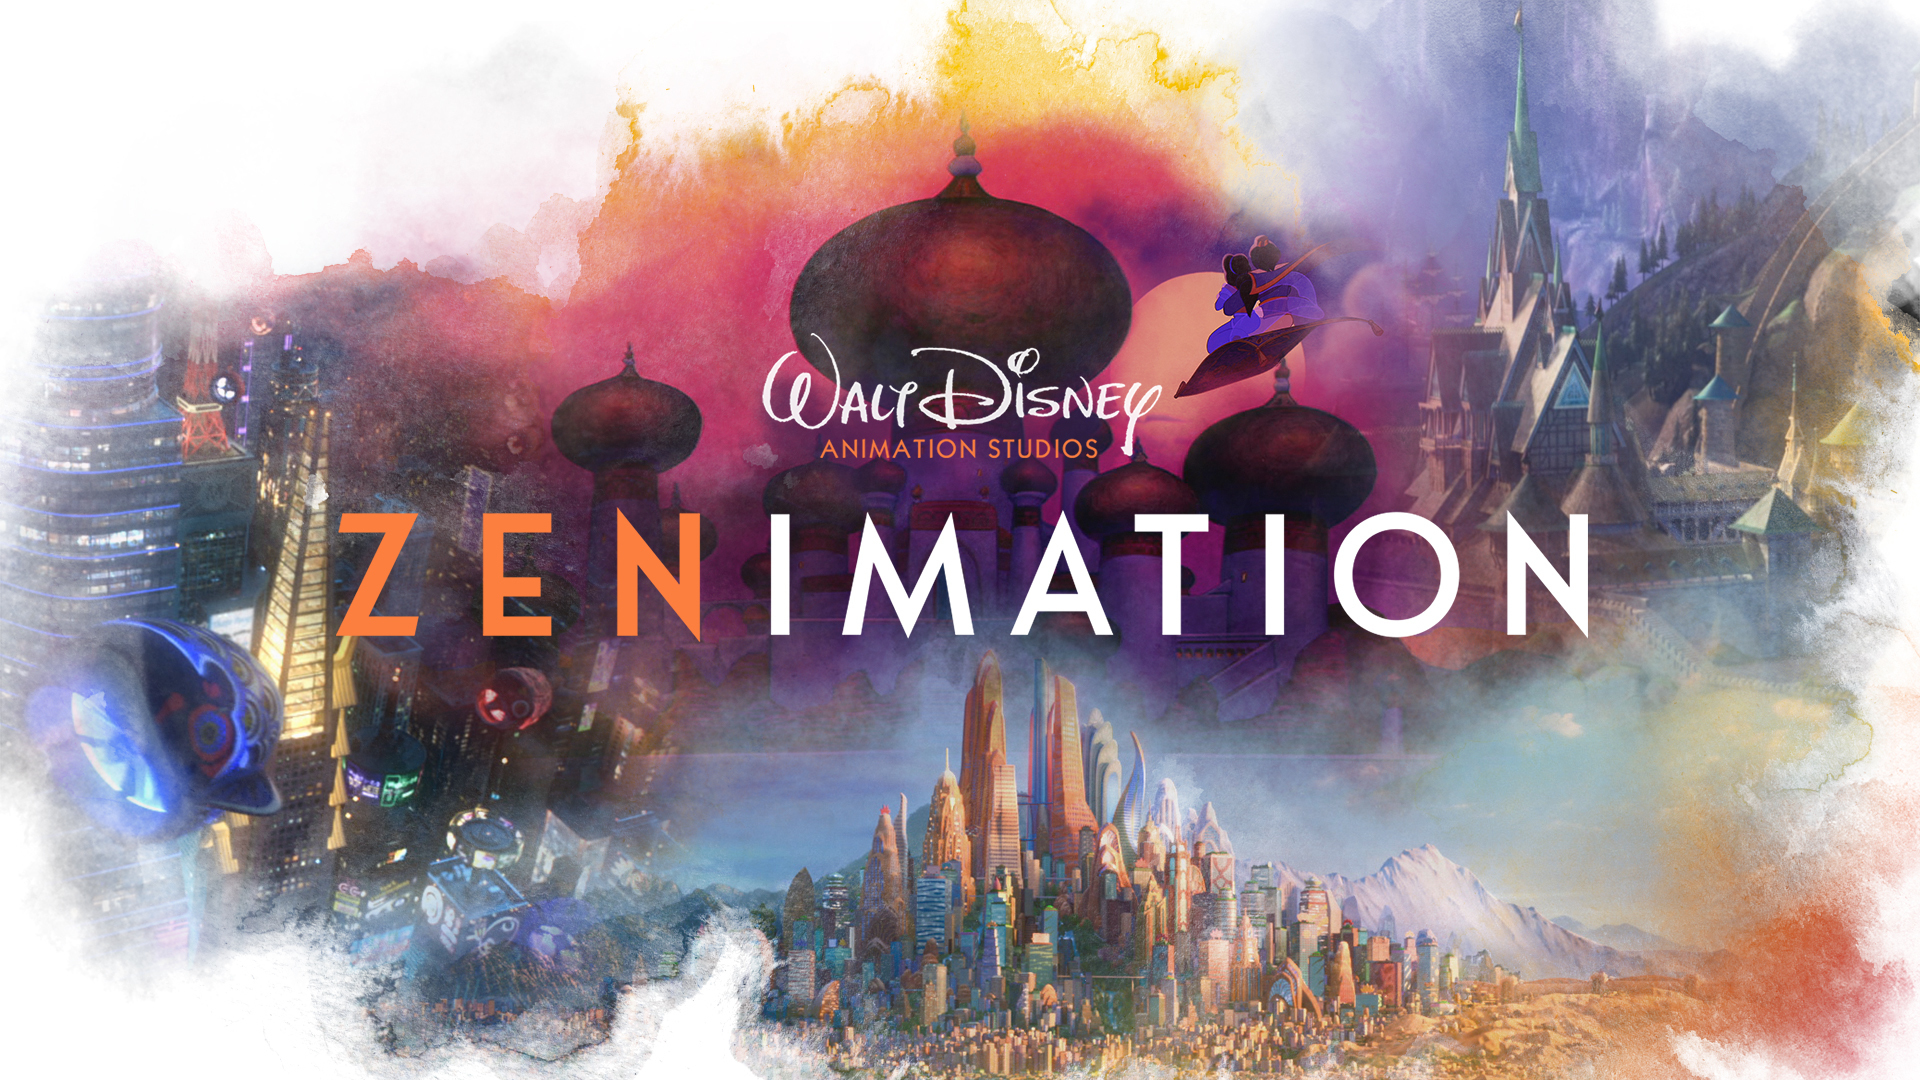 Zenimation on DisneyPlus